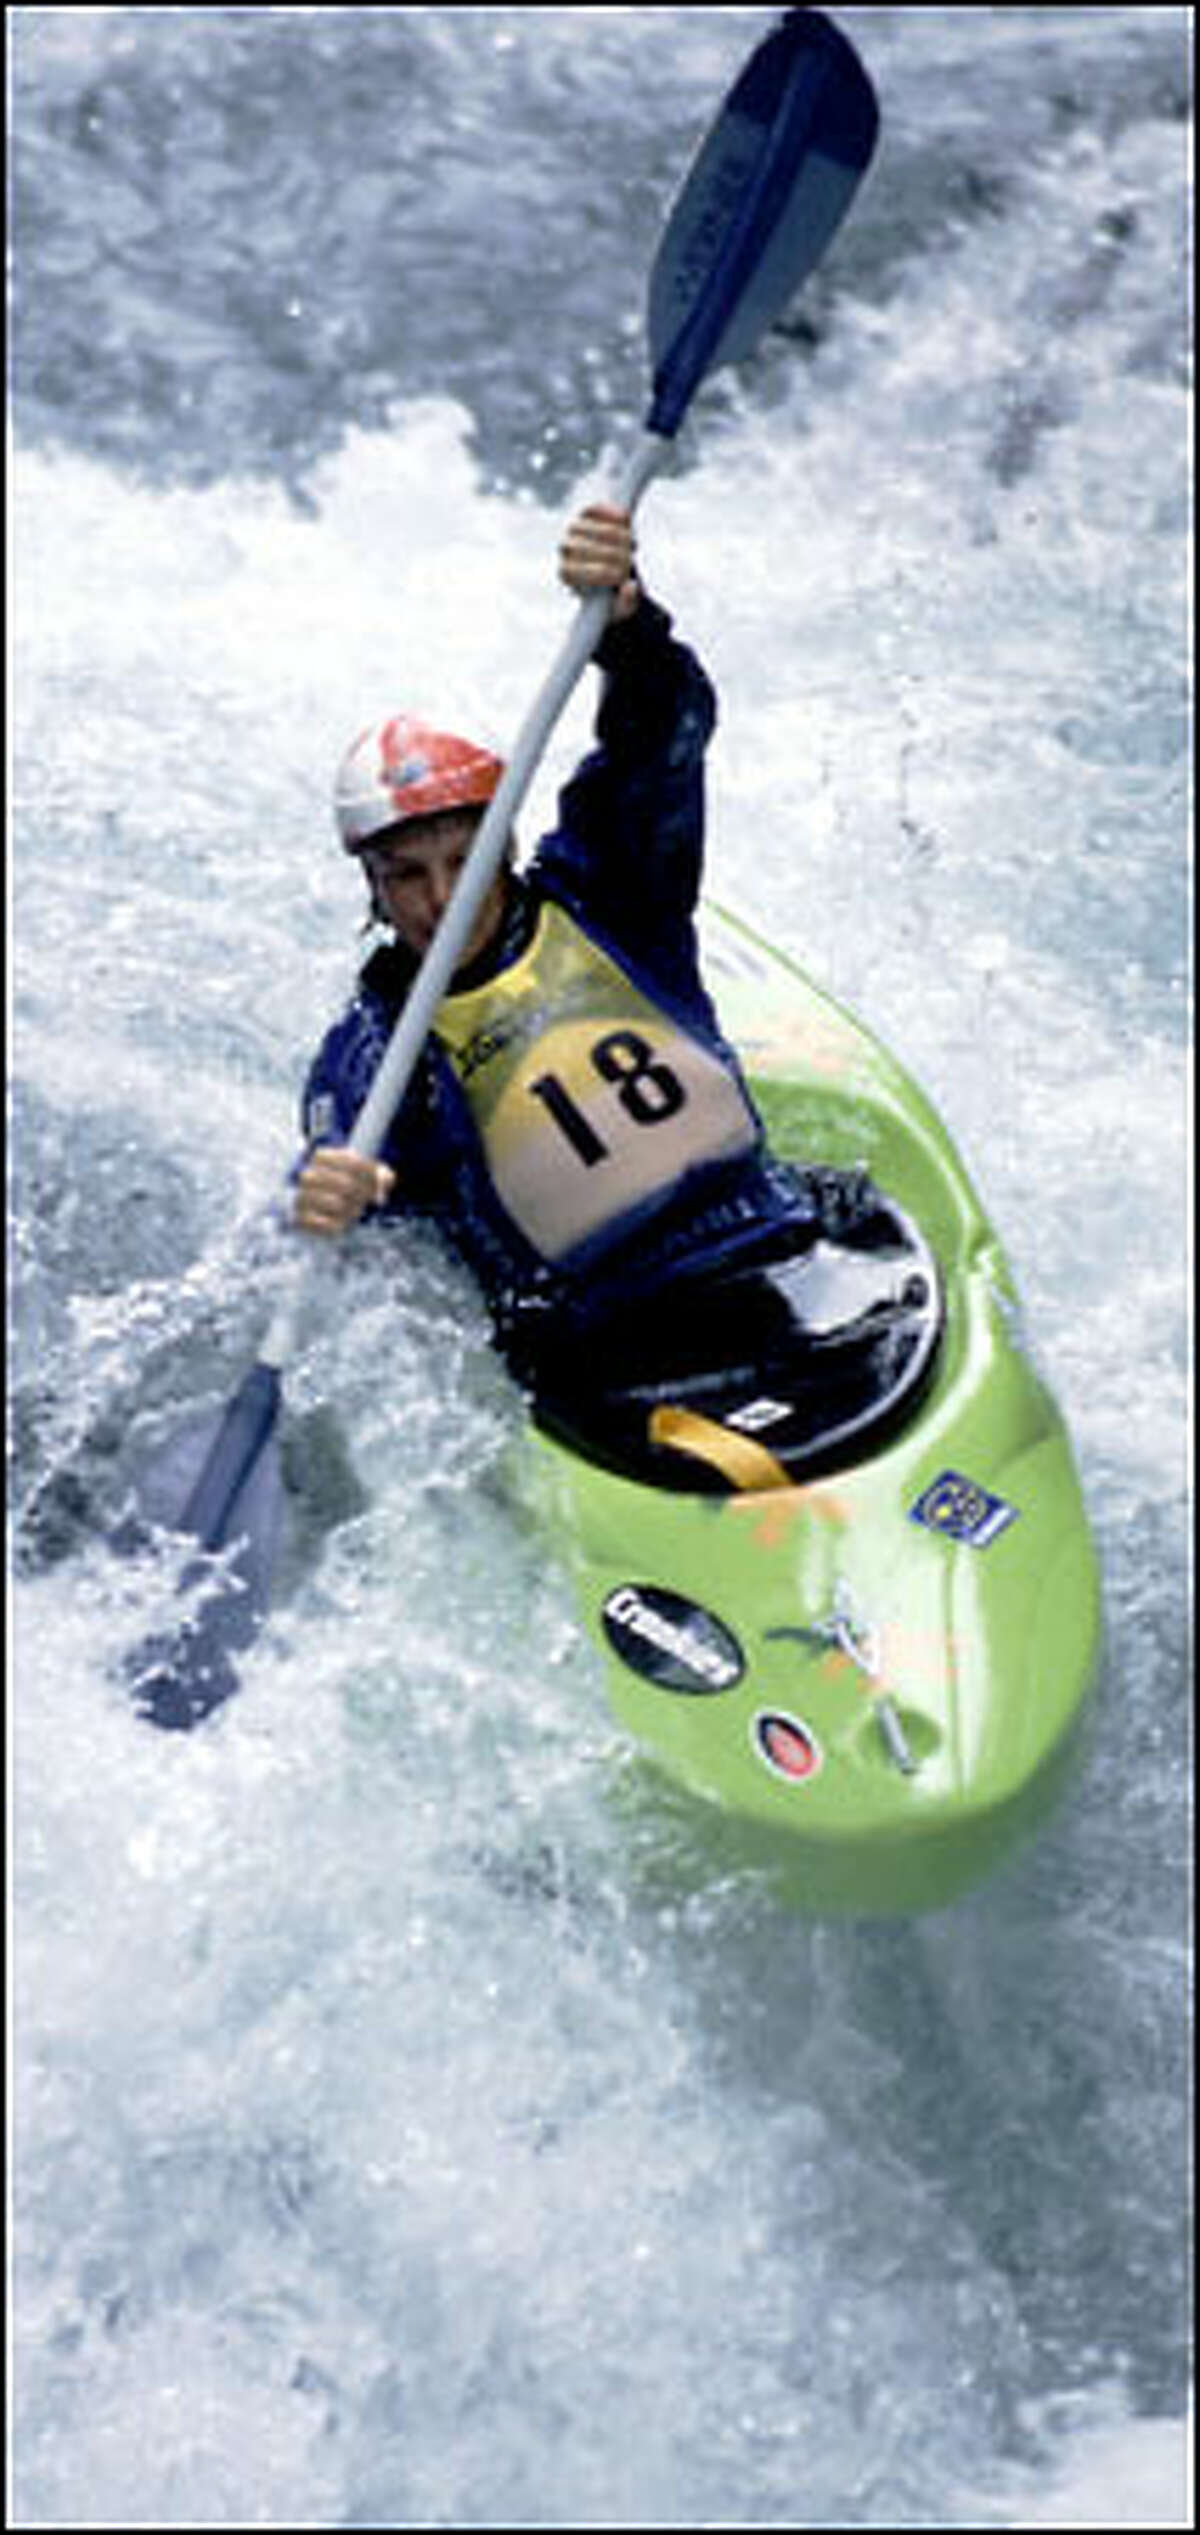 A kayaker hits the whitewater on the White Salmon River in an